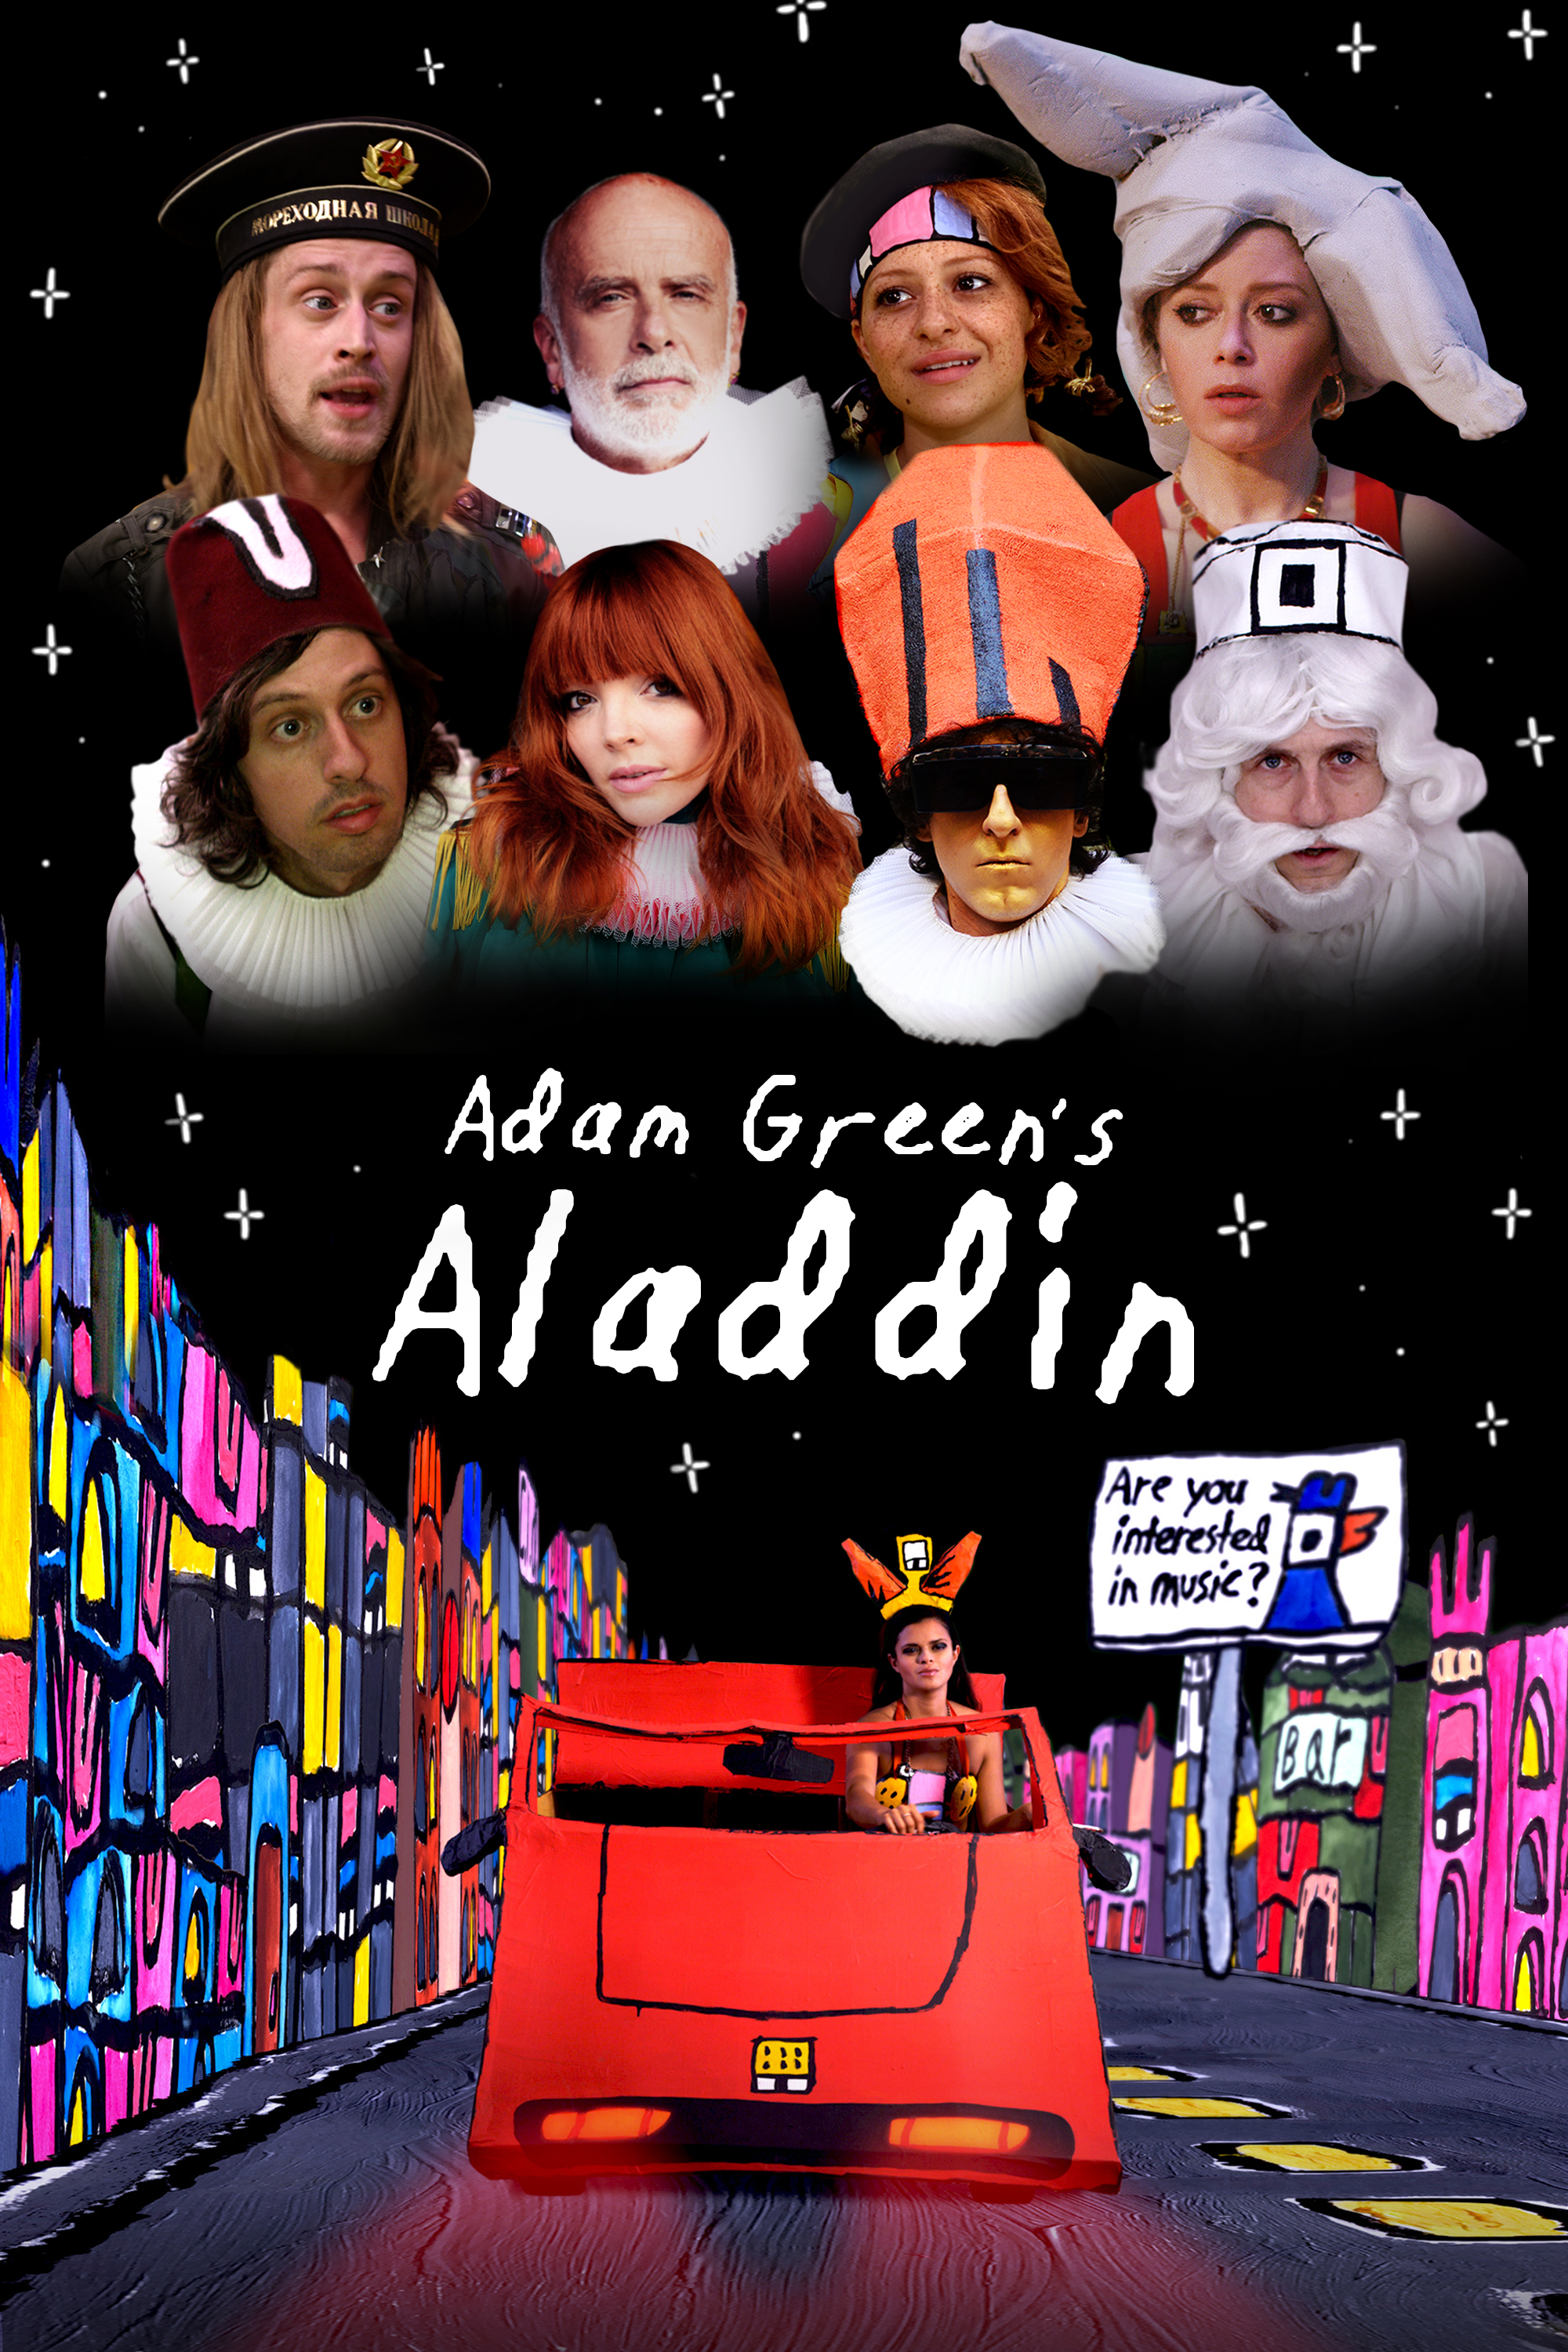 adam green emily lyrics